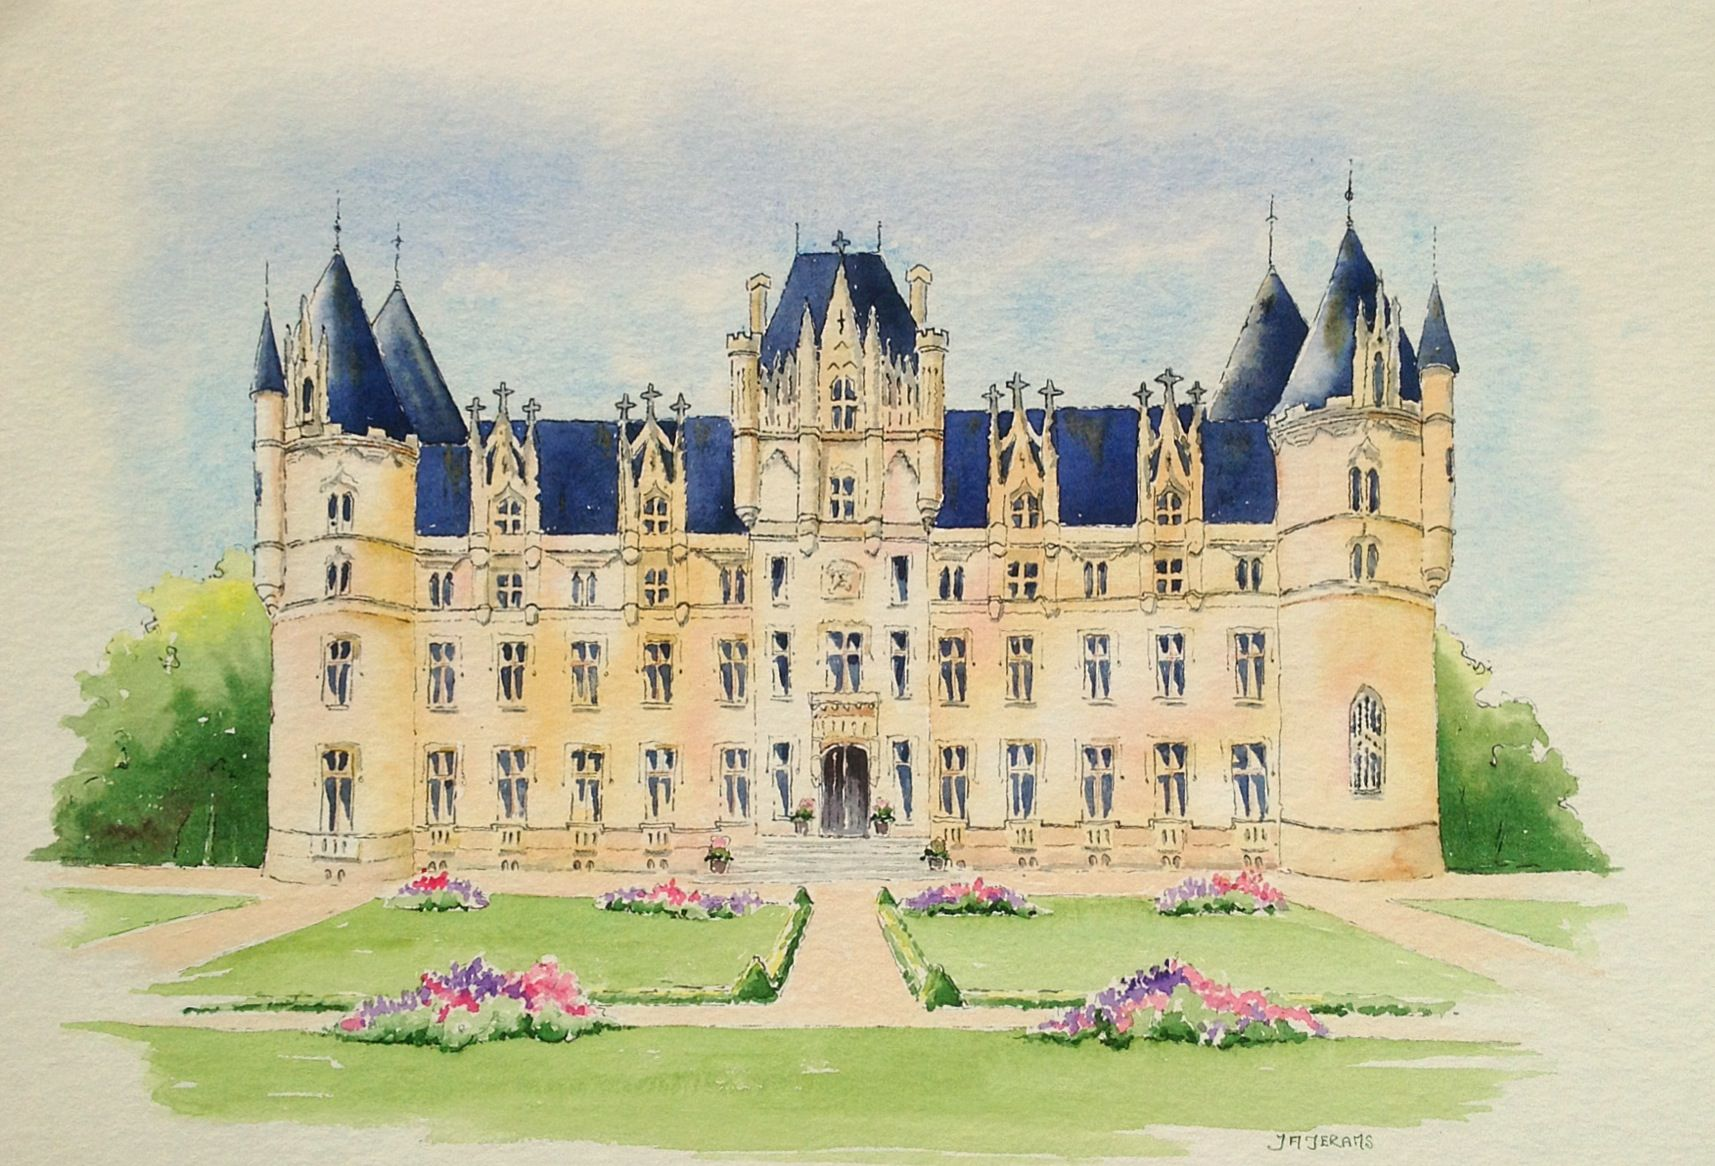 Watercolor painting of the stunning Chateau at Challain la Potherie, where wedding dreams come true. Art by Judith Jerams.